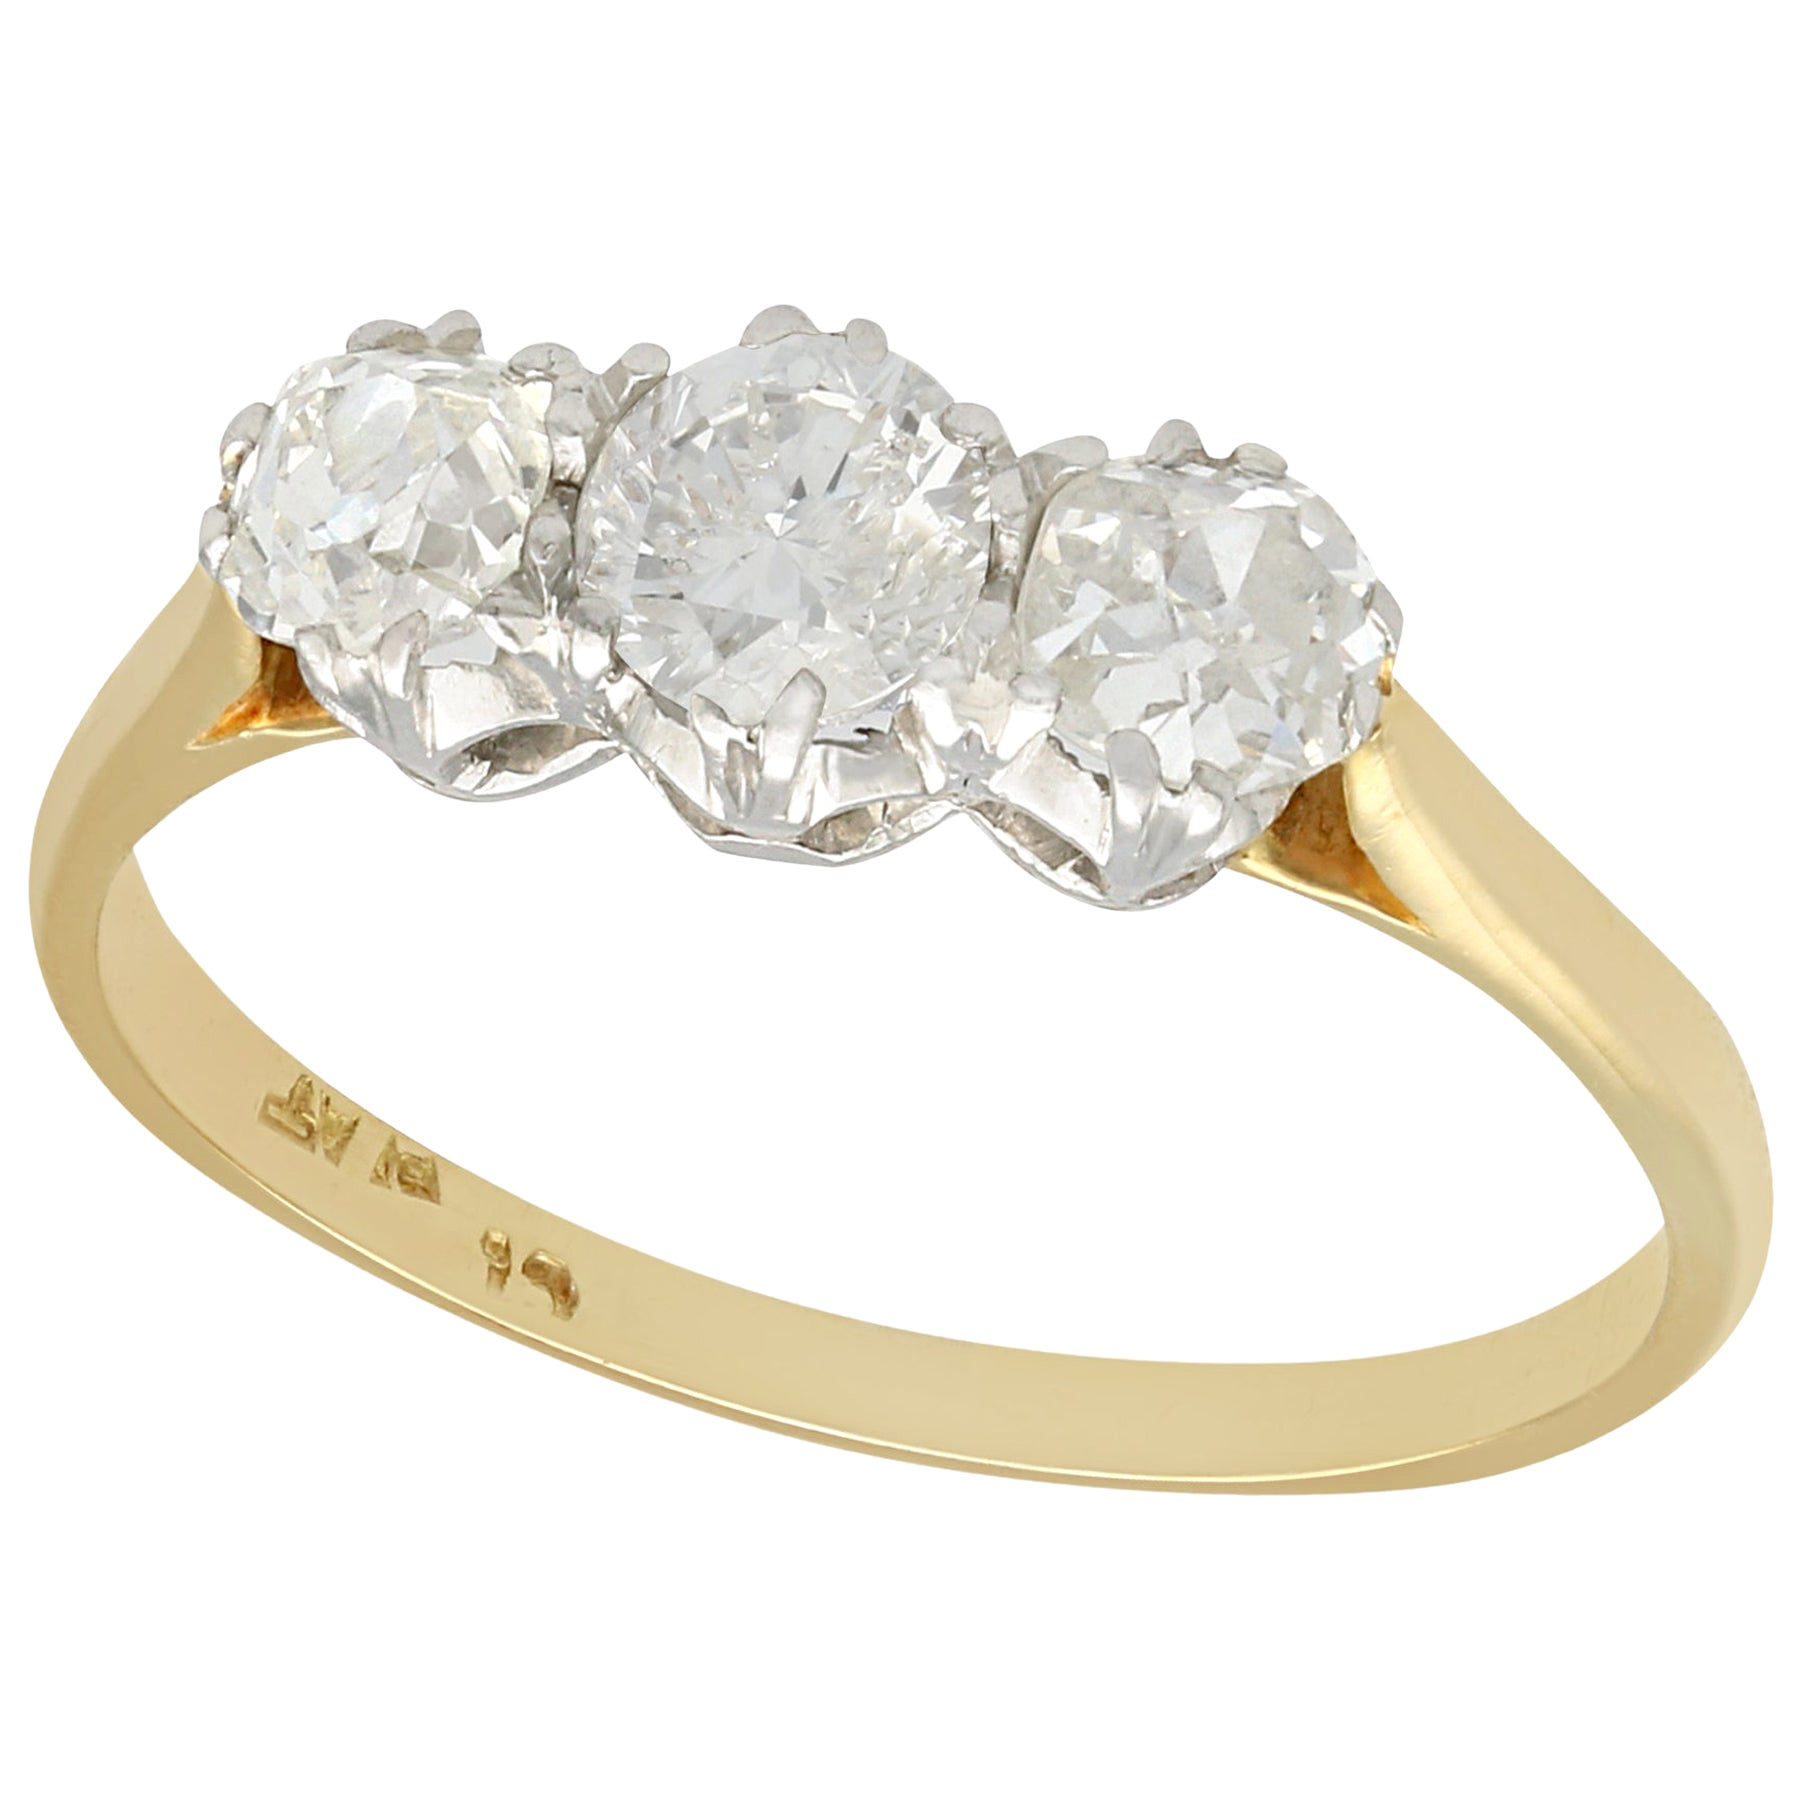 Antique Diamond and Yellow Gold Trilogy Ring, circa 1910